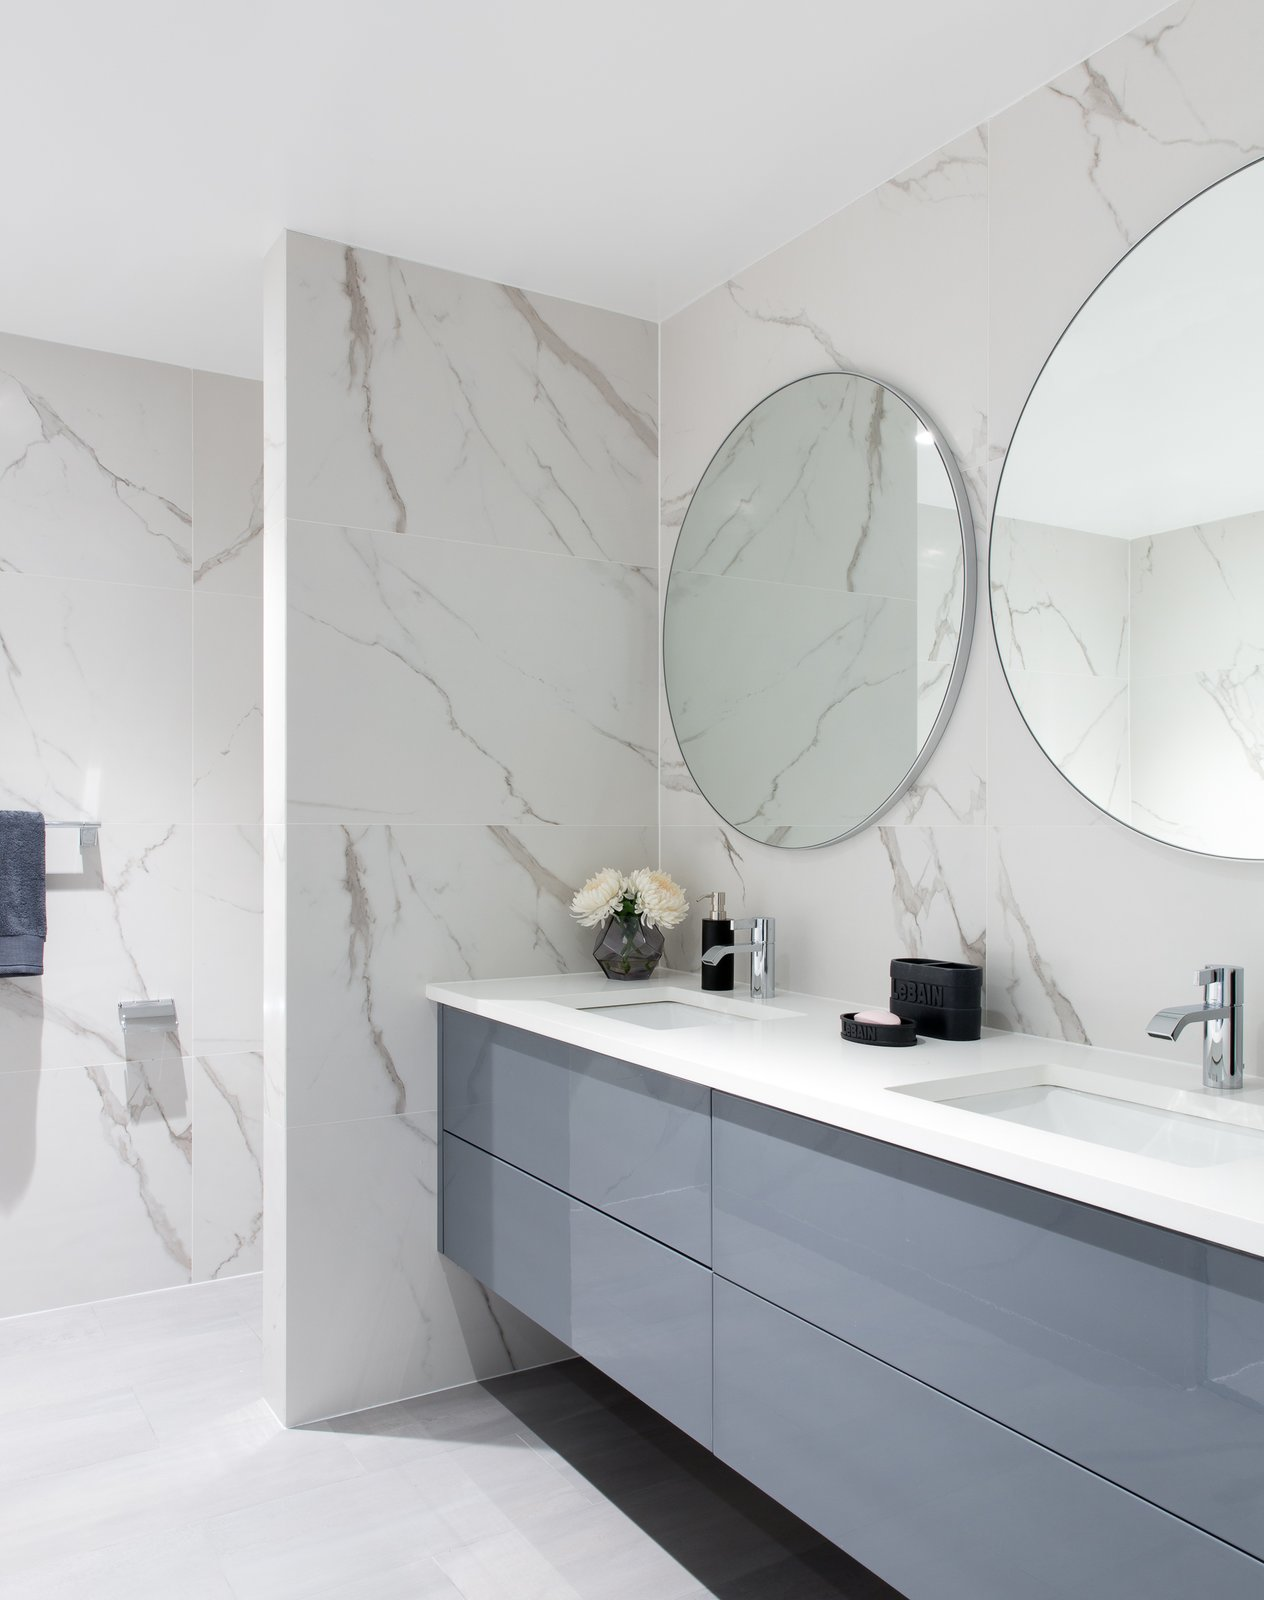 Bath, Stone, Porcelain Tile, Engineered Quartz, Undermount, Porcelain Tile, and Marble  Best Bath Undermount Stone Photos from Boerum Hill Brownstone